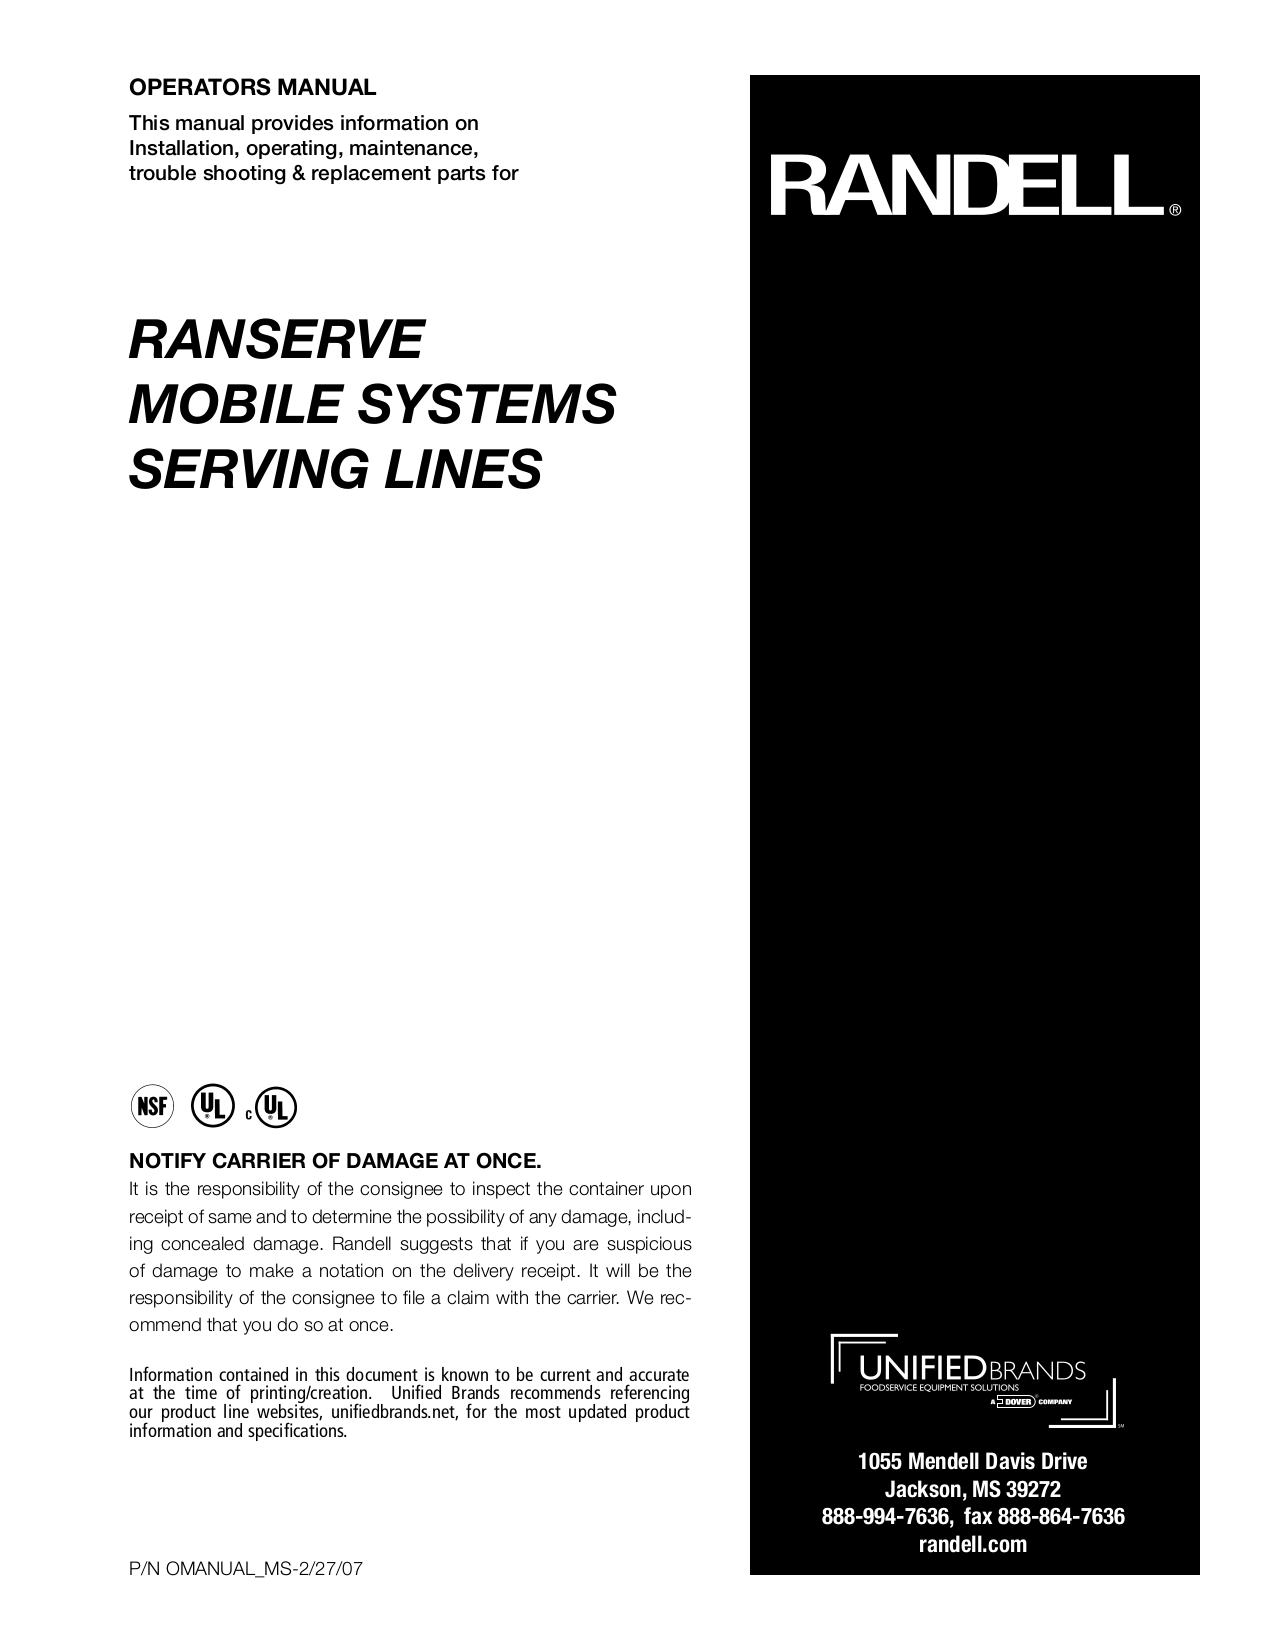 pdf for Randell Other 14G HTD-4S Food Holding Units manual